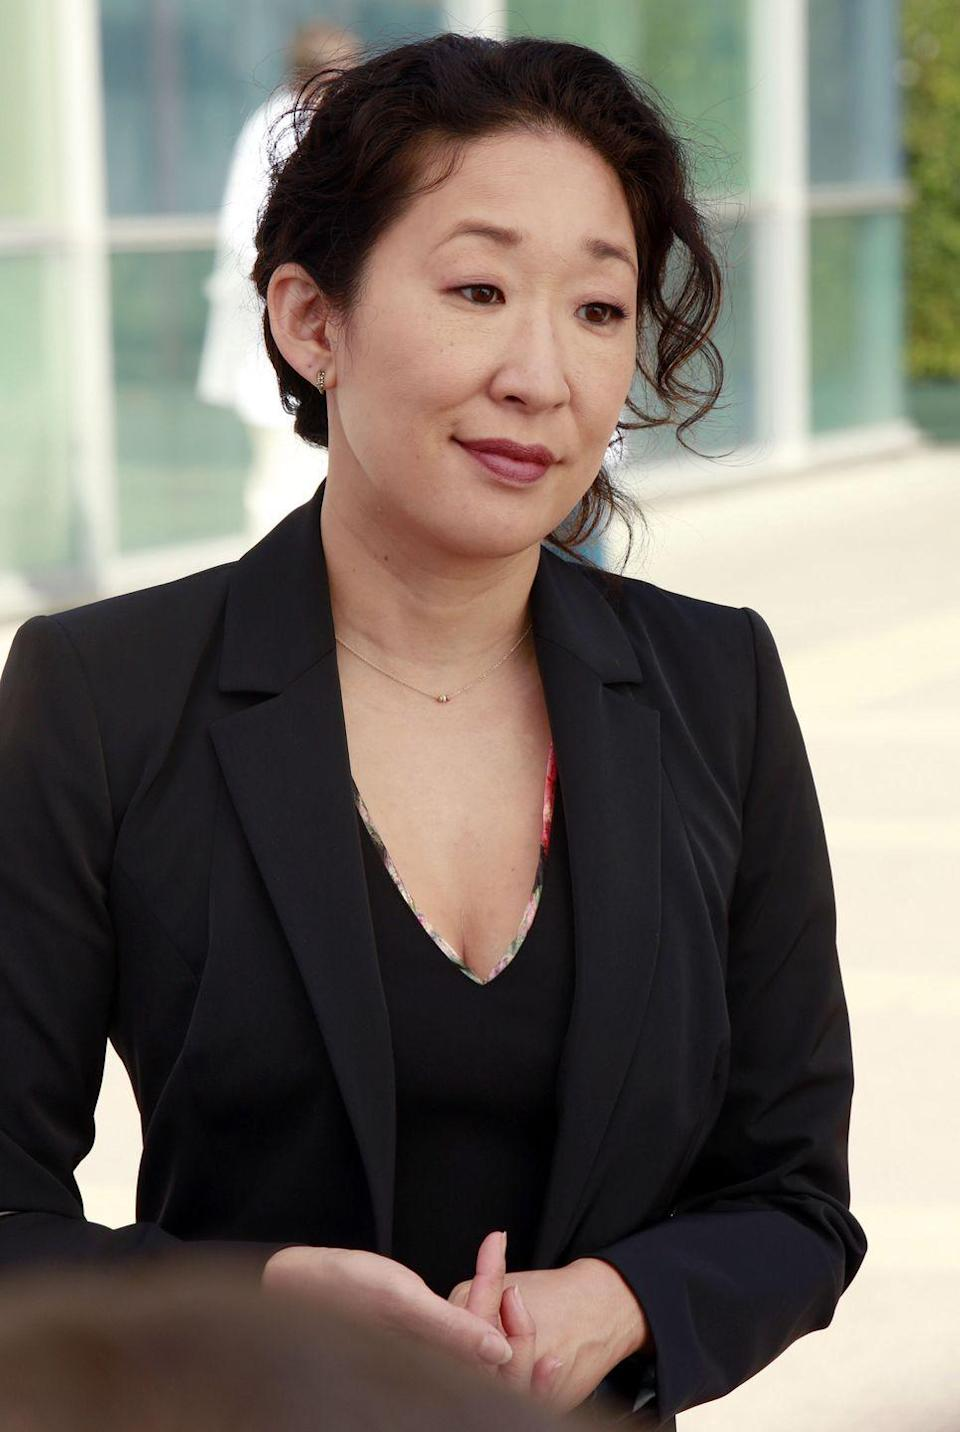 "<p>In season 10, Cristina left Seattle and is now kicking international ass as the Chief Medical Officer, and Director of Cardiothoracic Surgery at the Klausman Institute for Medical Research in Zurich. The character's graceful and open-ended exit is a testament to Oh's great relationship with <em>Grey's Anatomy </em>creator Shonda Rhimes, who is <a href=""https://www.marieclaire.com/culture/g18542081/greys-anatomy-cast-on-set-drama-behind-the-scenes/"" rel=""nofollow noopener"" target=""_blank"" data-ylk=""slk:notorious"" class=""link rapid-noclick-resp"">notorious</a> for giving less-happy endings to characters when she doesn't get along with the actors who play them. </p>"